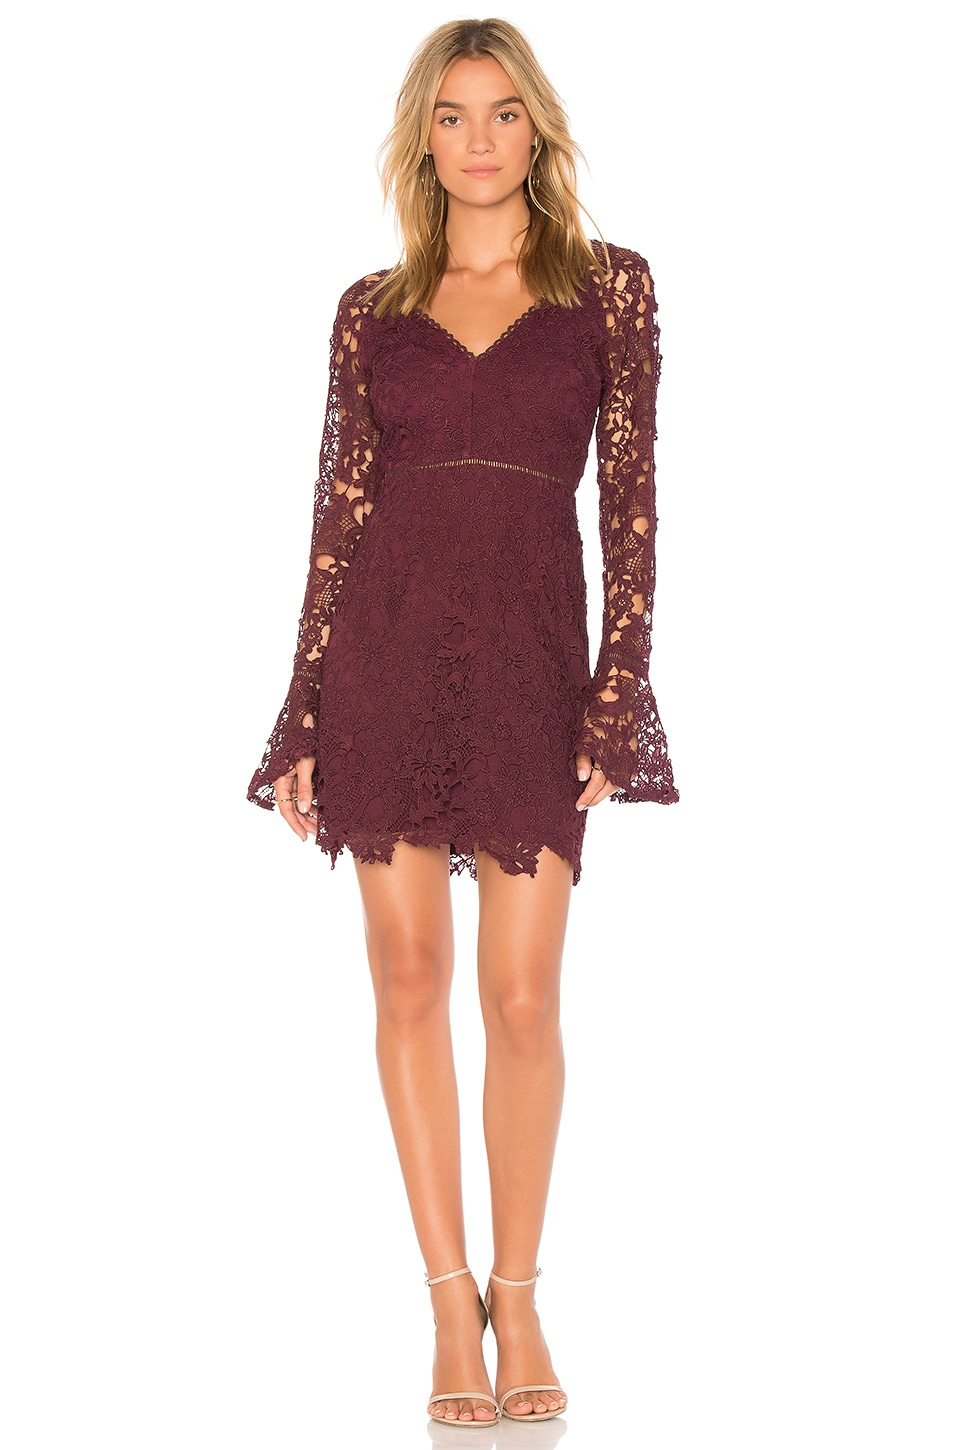 Cheap Pre Order Mercury Dress in in Wine. - size S (also in XS) Lovers + Friends Discount Online Discounts Cheap Price Fast Shipping Sale Brand New Unisex Z225awR3